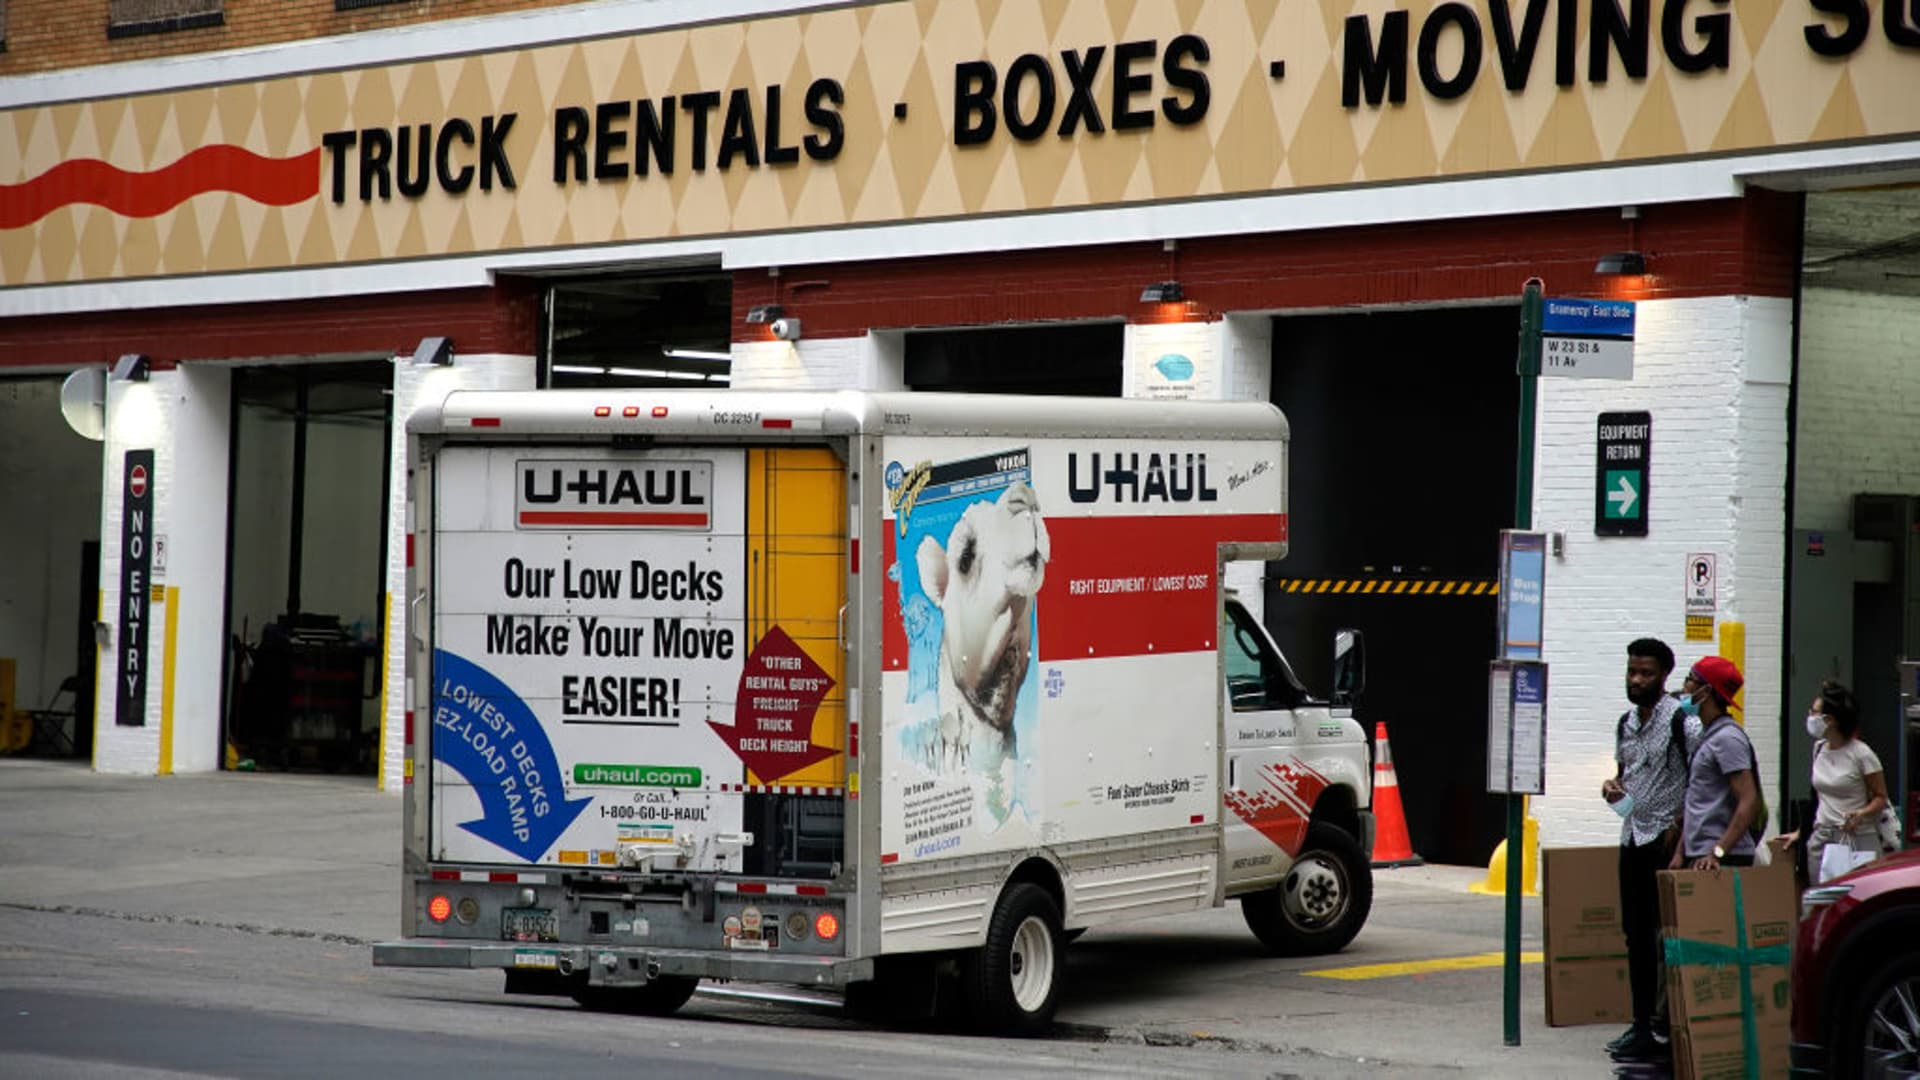 A truck is seen in front of the U-Haul facility as the city continues Phase 4 of re-opening following restrictions imposed to slow the spread of coronavirus on August 31, 2020 in New York City.